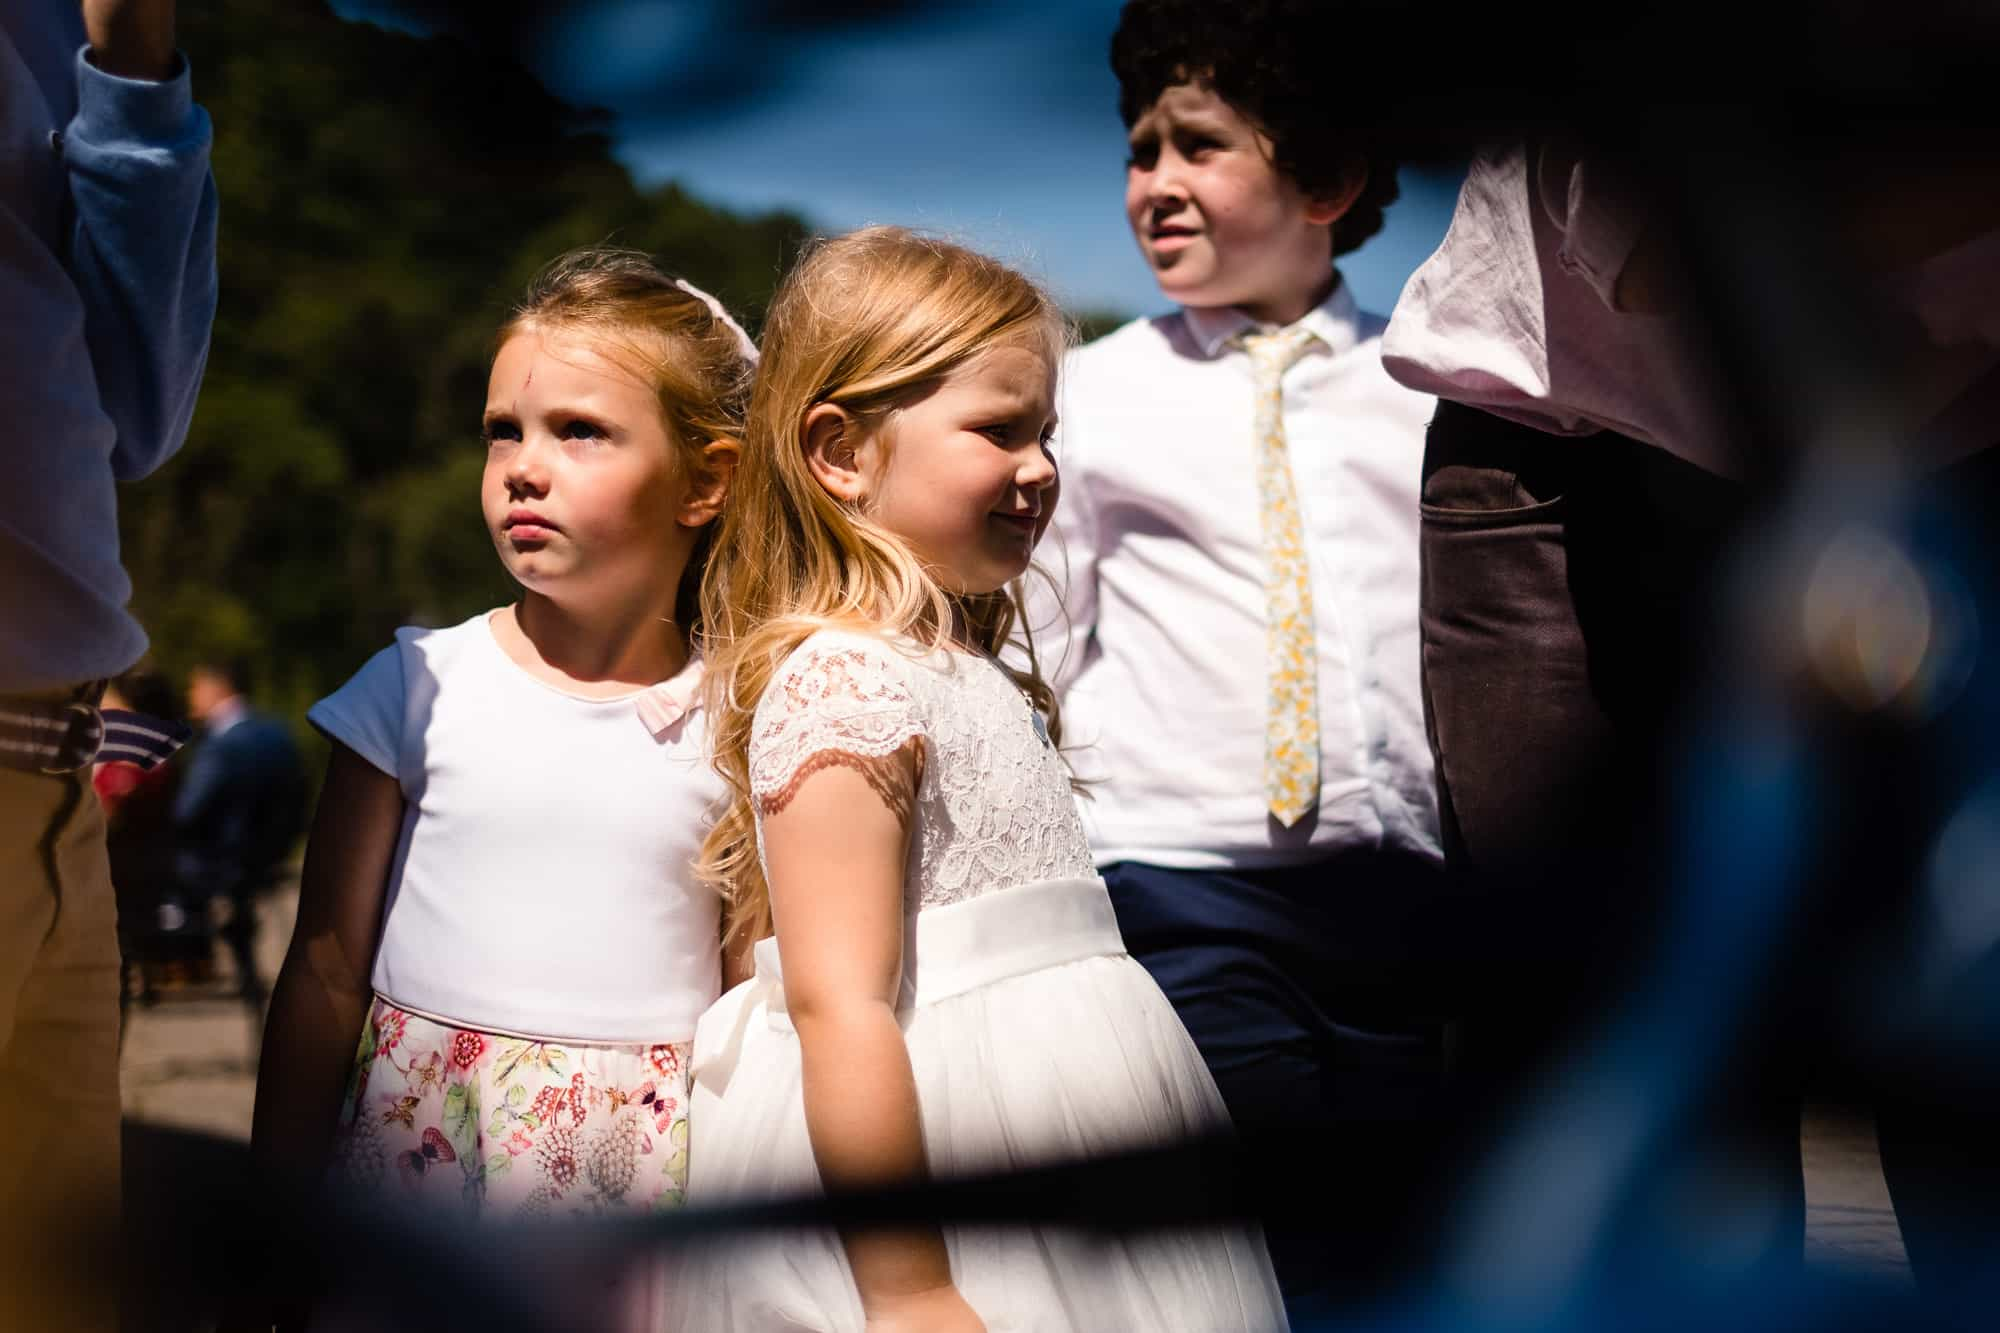 children playing at the wedding